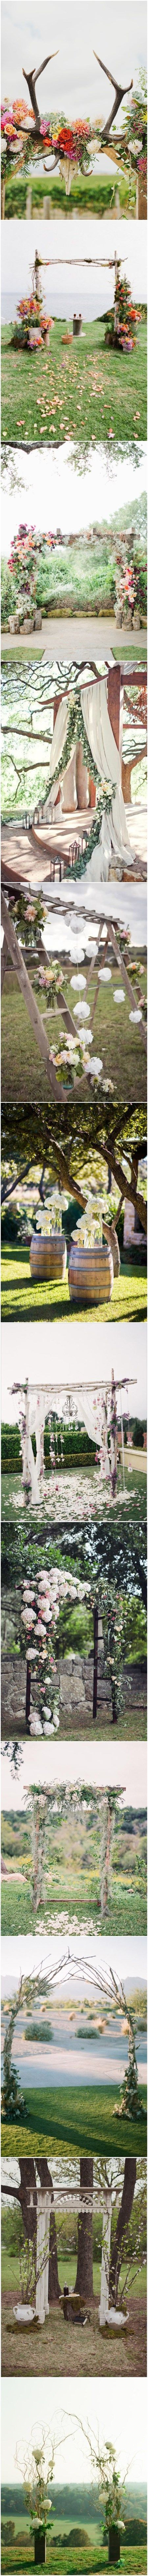 best country wedding country vignettes images on pinterest